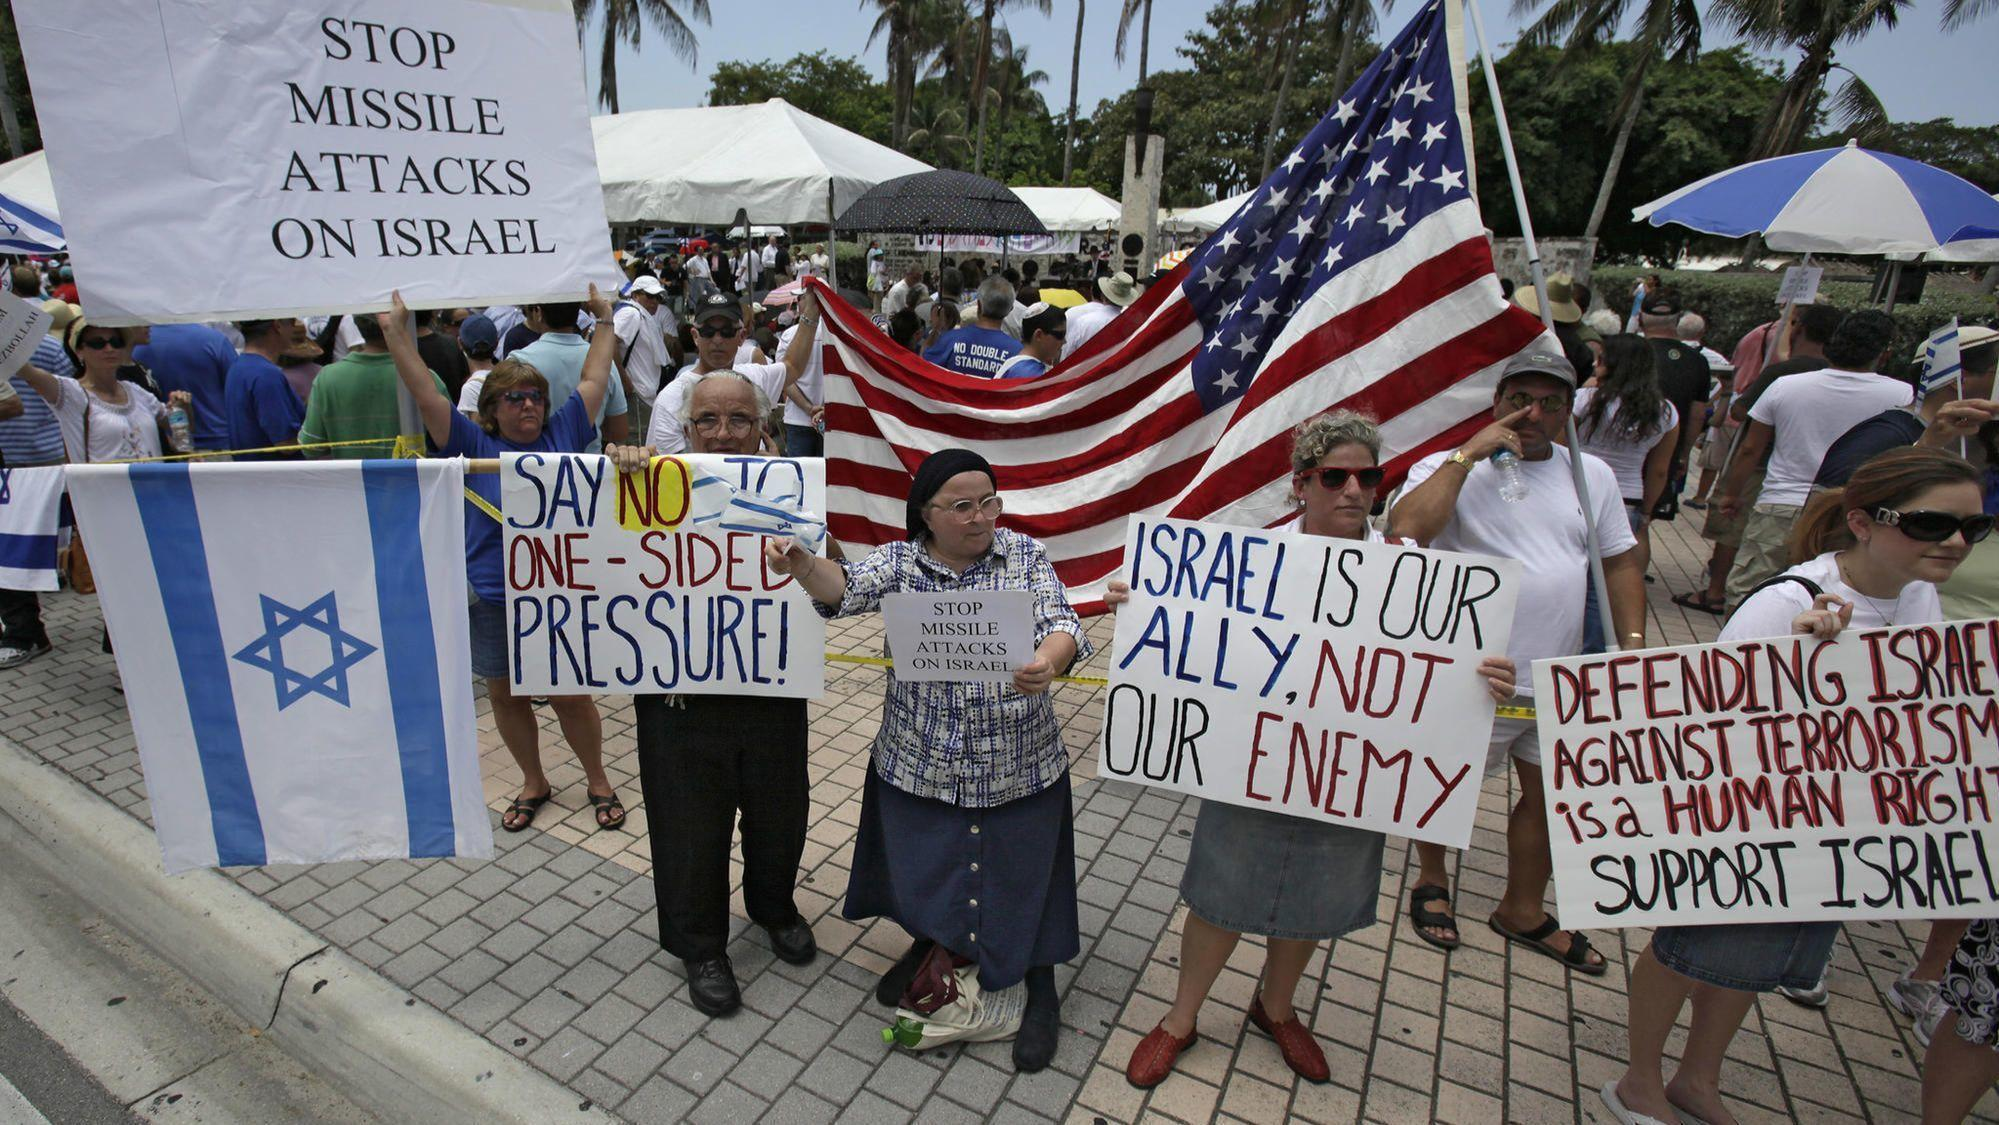 israel and usa fragile relationship